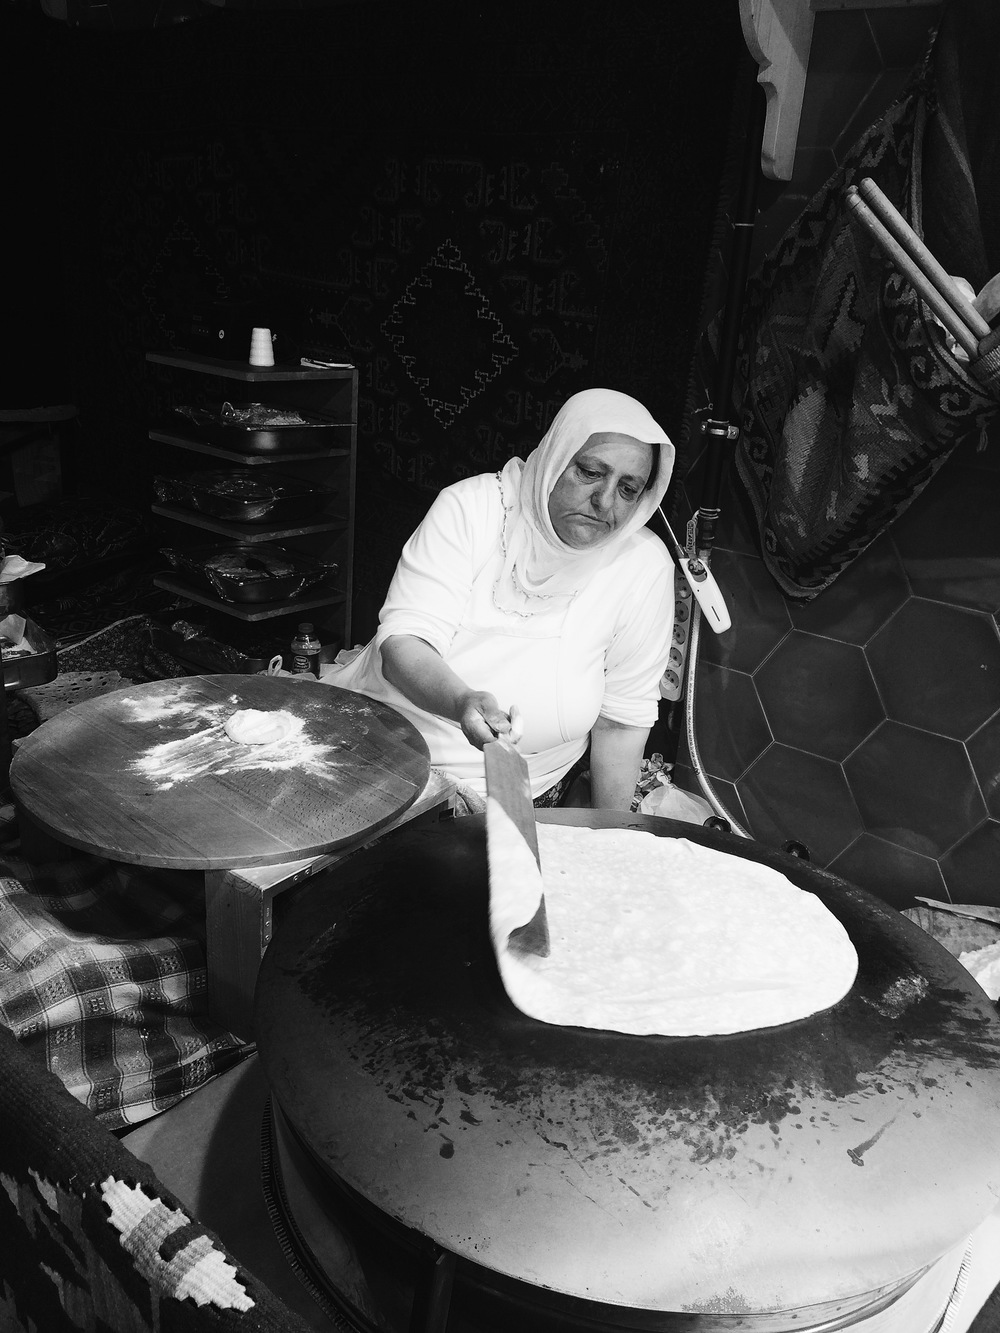 A lady making the thin crepe like bread for Gozleme in a window of a restaurant. I am not kidding. There are many establishments which display ladies making these fresh everyday much like the dumpling making women in Chinatown. Life is hard in the city, and, being an European one, expensive. It often shows in the expressions of people here, who are doing what they can to make ends meet.